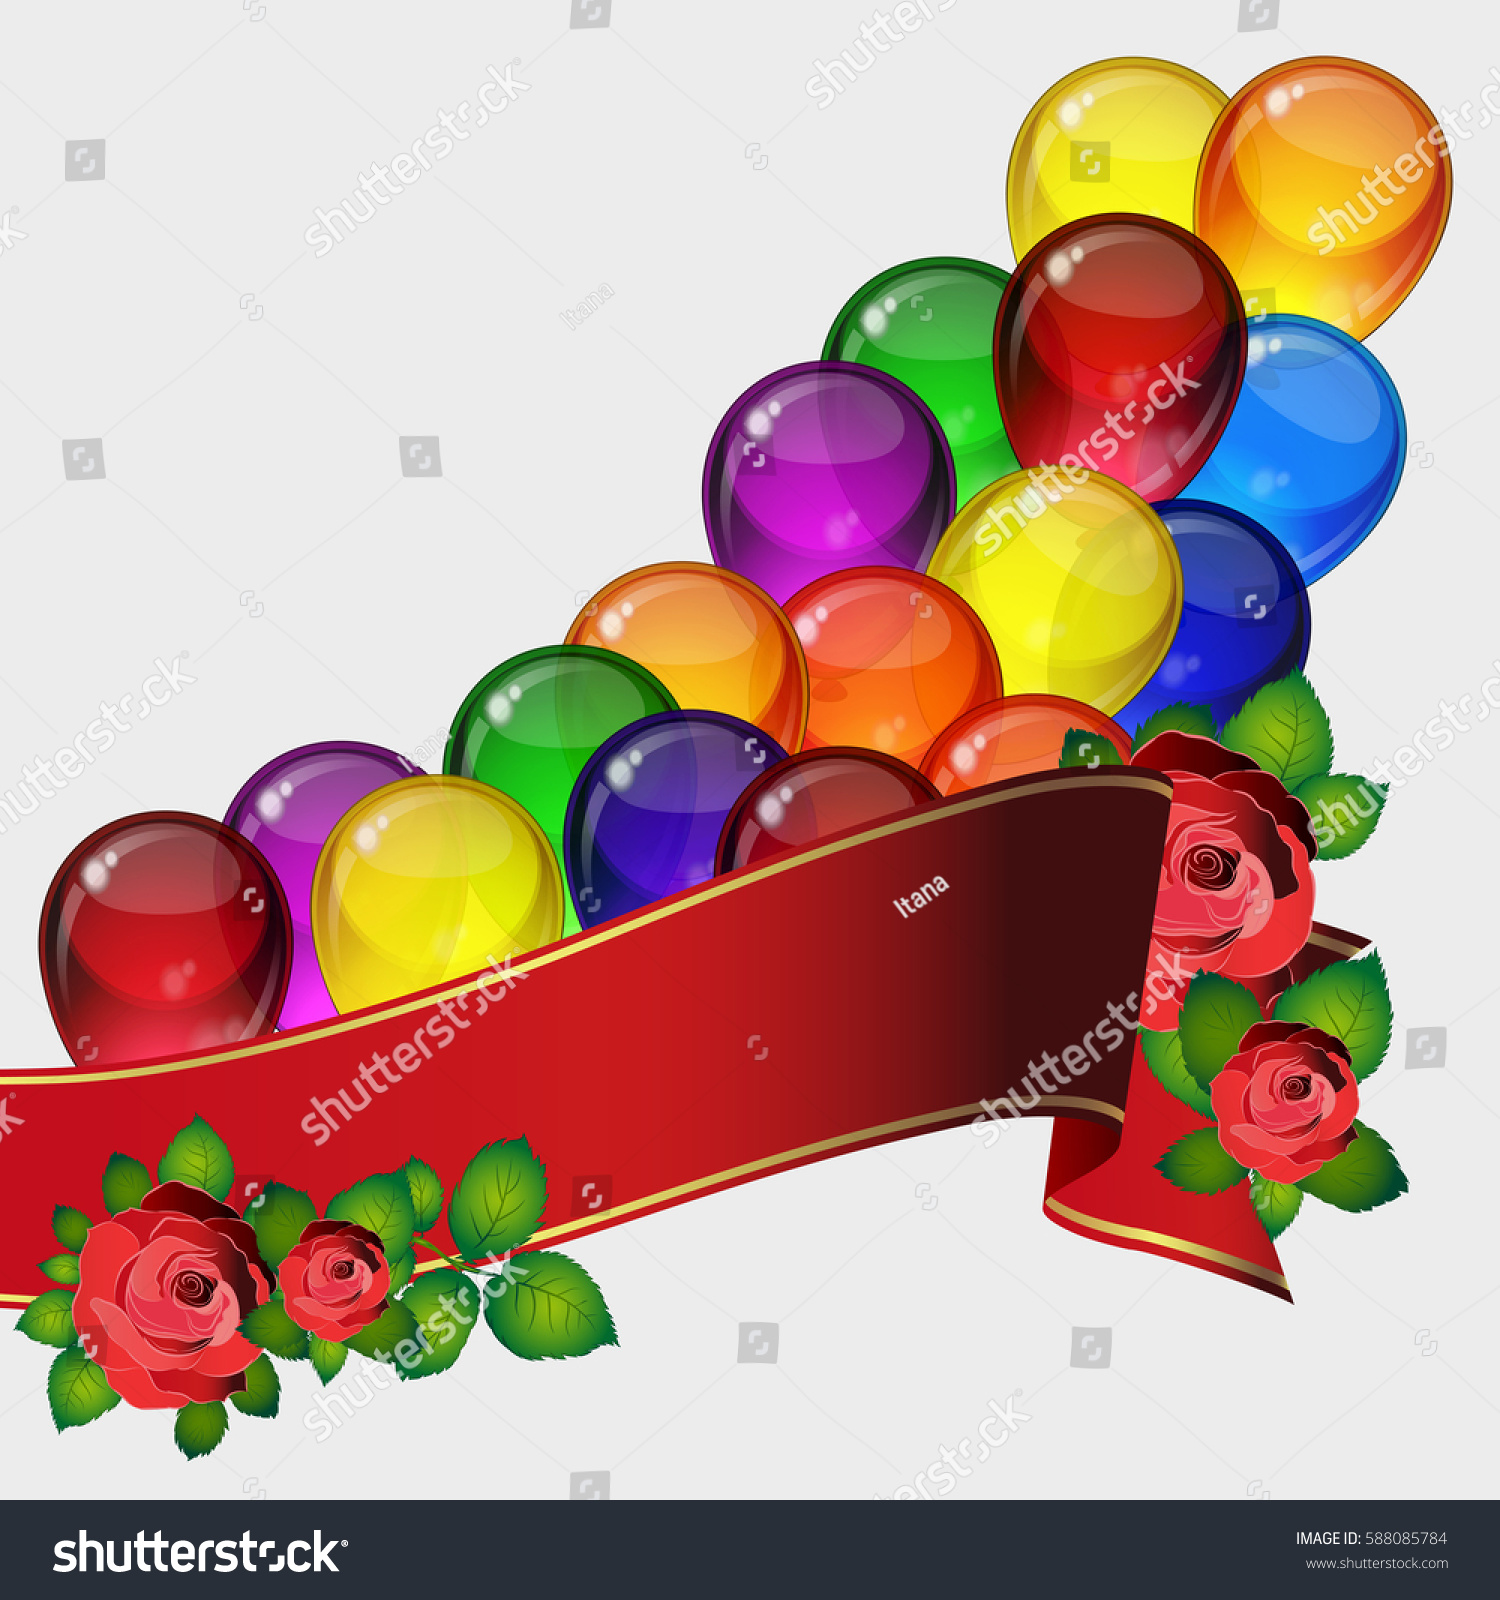 Birthday Party Background Colorful Festive Balloons Stock